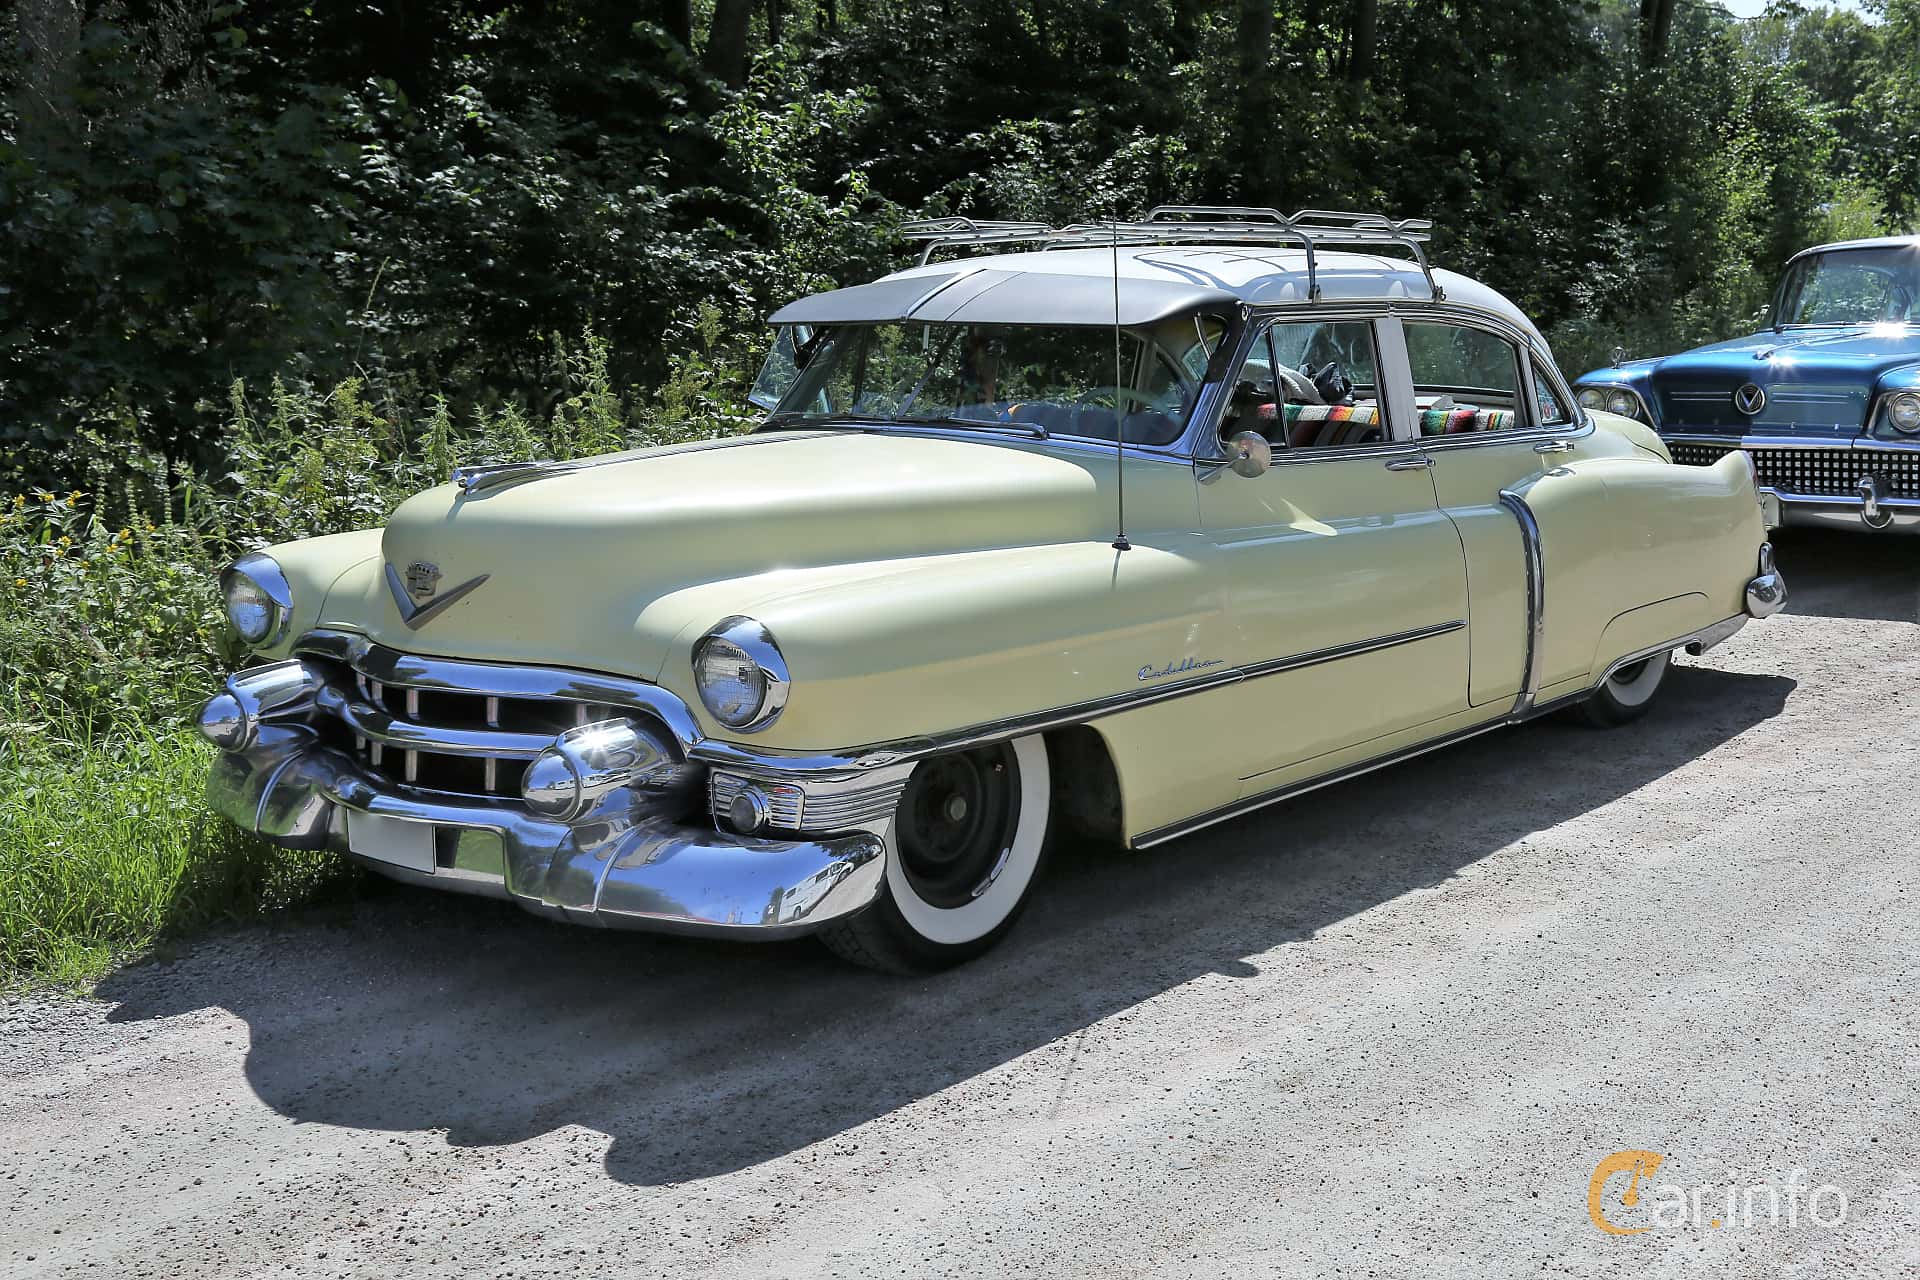 Cadillac Sixty-Two Sedan 5.4 V8 Hydra-Matic, 213hp, 1953 at A-bombers - Old Style Weekend Backamo 2019